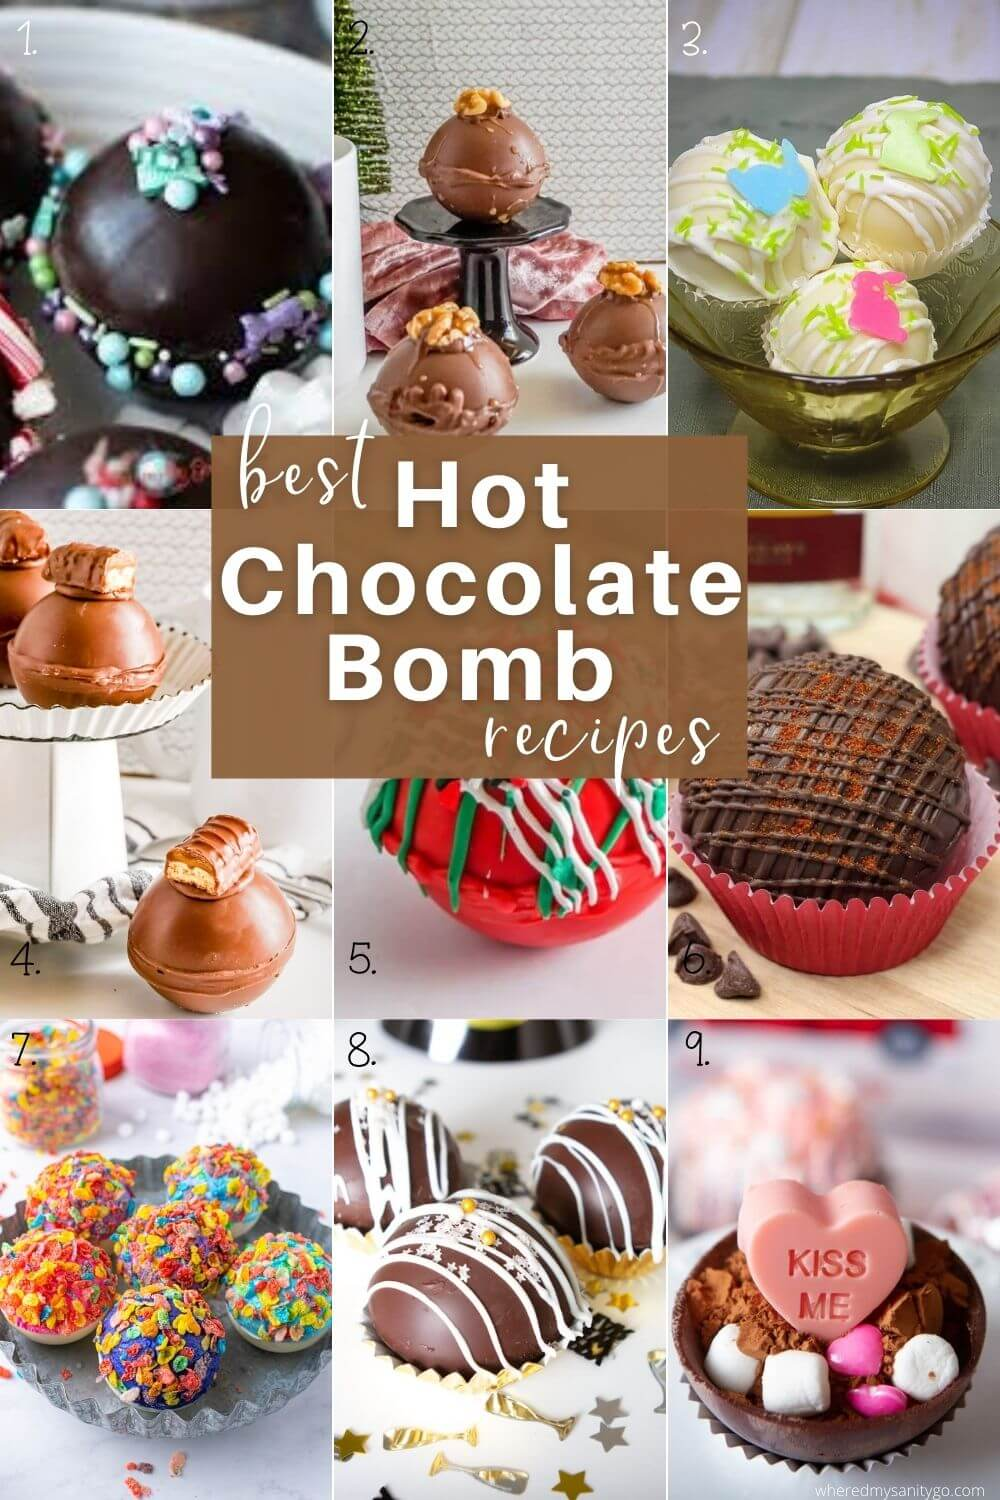 Best Hot Chocolate Bomb Recipes To Try This Winter